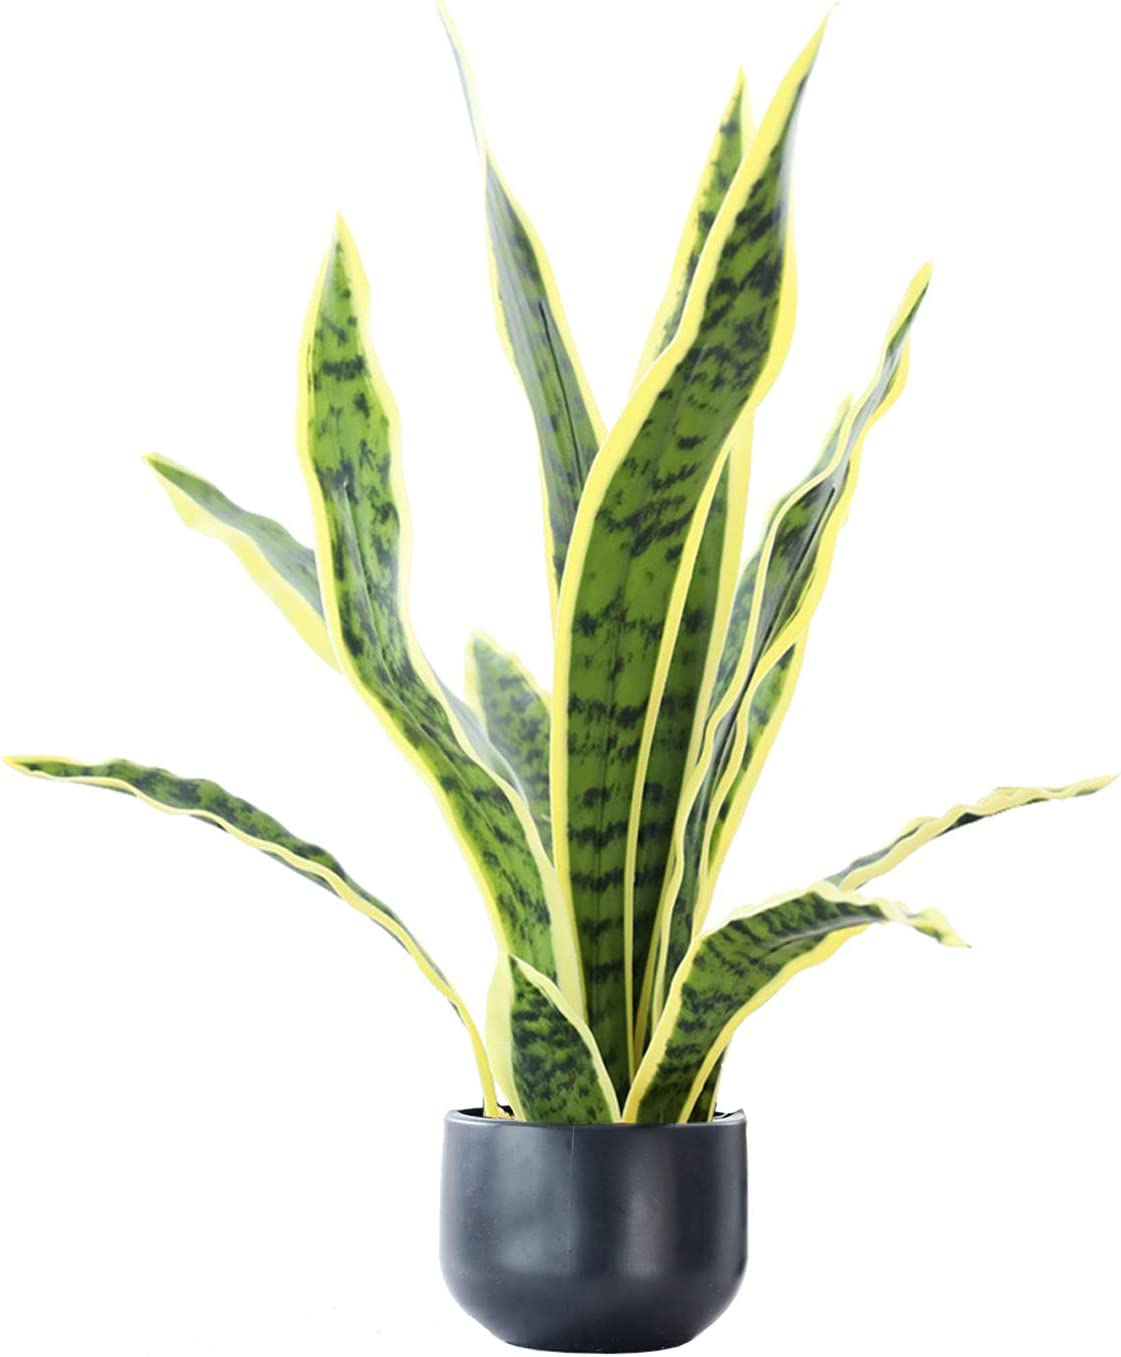 "Beebel Artificial Snake Plant 22"" Fake Sansevieria Potted Plants Plastic Greenery Perfect Faux Agave Plant for Home Garden Office Store Decoration"